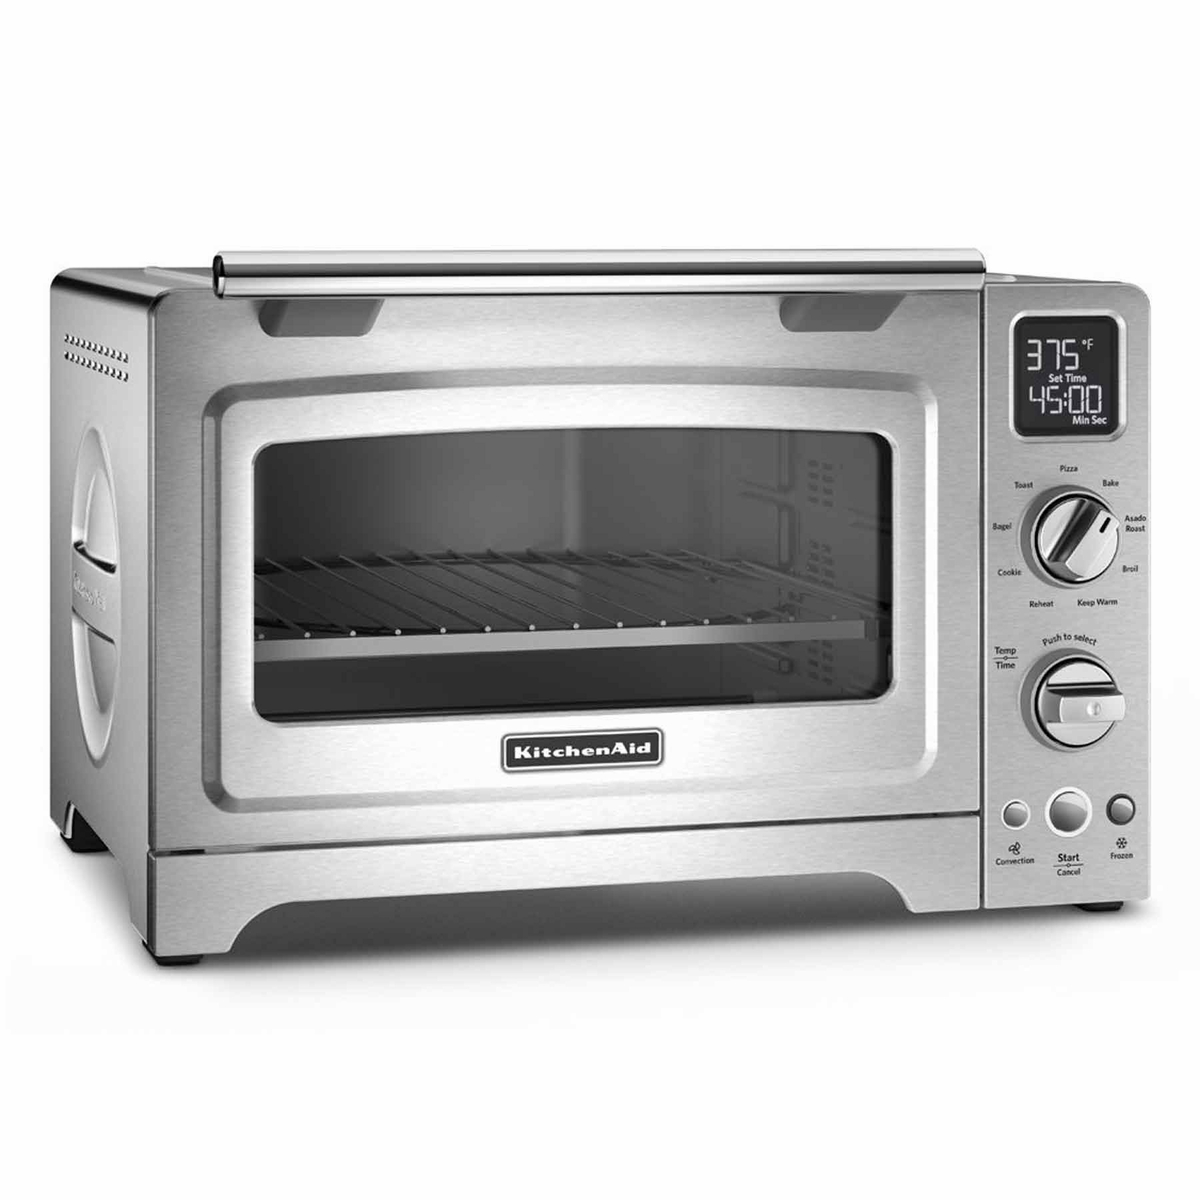 Countertop Oven Wattage : ... KCO275SS 1800 Watt Countertop Digital Convection Oven, Stainless Steel